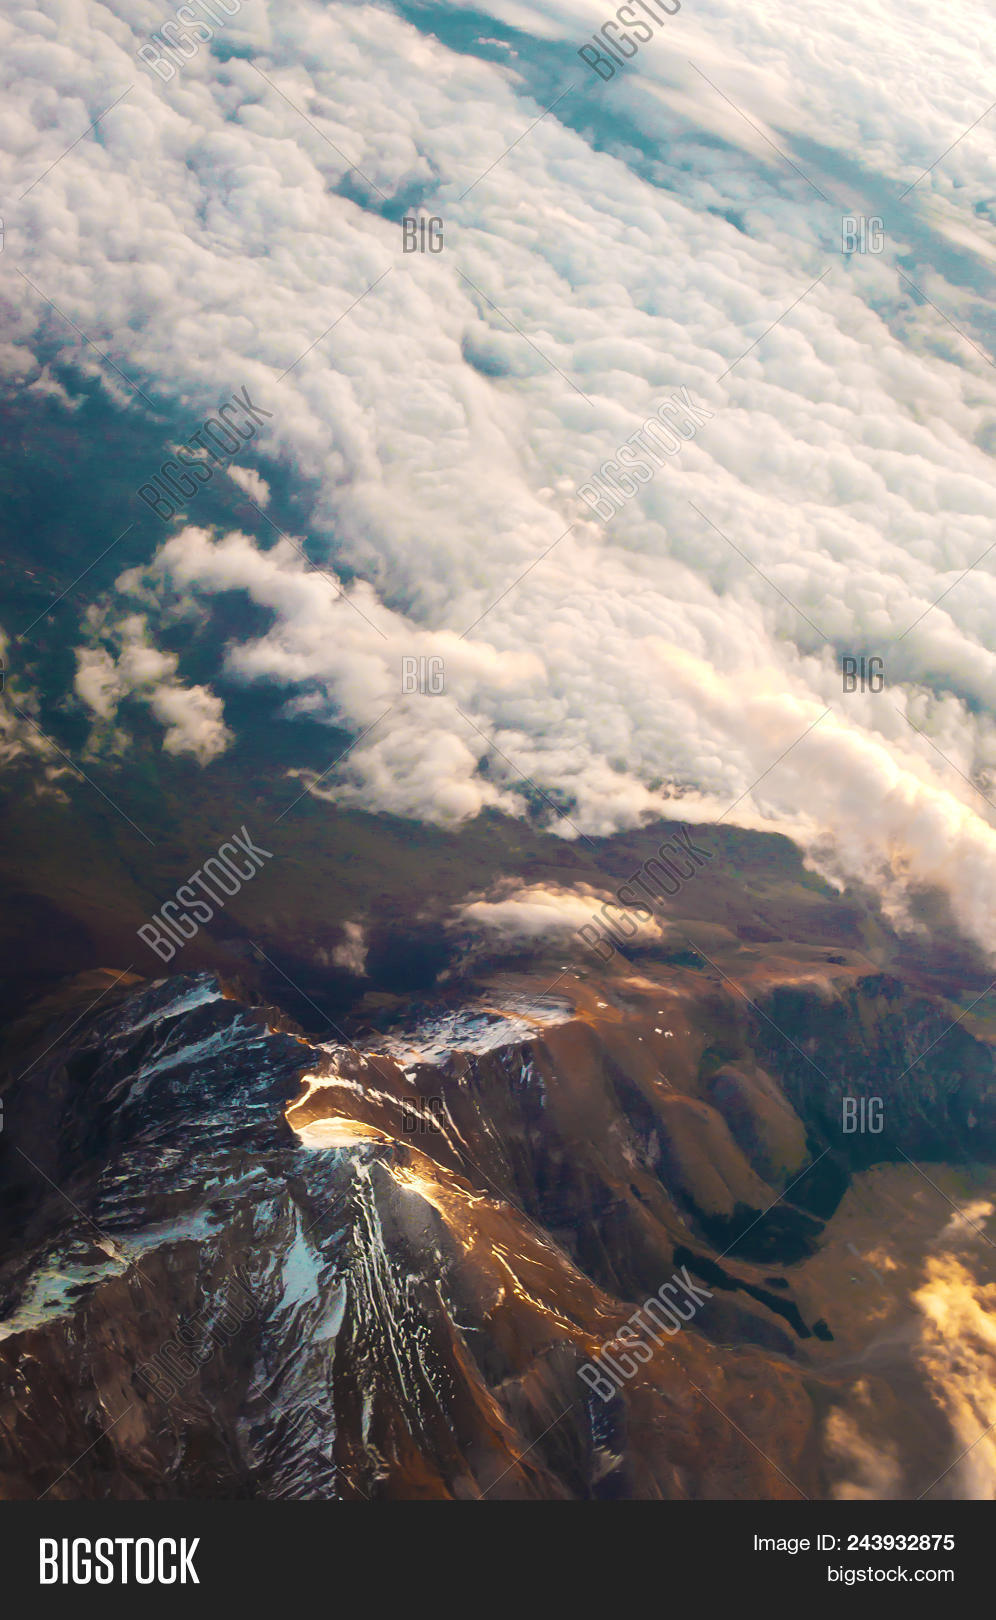 above,aerial,air,altitude,atmosphere,awe,background,beautiful,beauty,blue,breathtaking,bright,cloud,cloudscape,dawn,day,dream,dreamlike,flight,fluffy,heaven,high,horizon,journey,landscape,light,majestic,morning,nature,over,paradise,rays,sky,skyline,space,stratosphere,sun,sunrise,sunset,top,travel,trip,vast,vibrant,view,warm,white,yellow